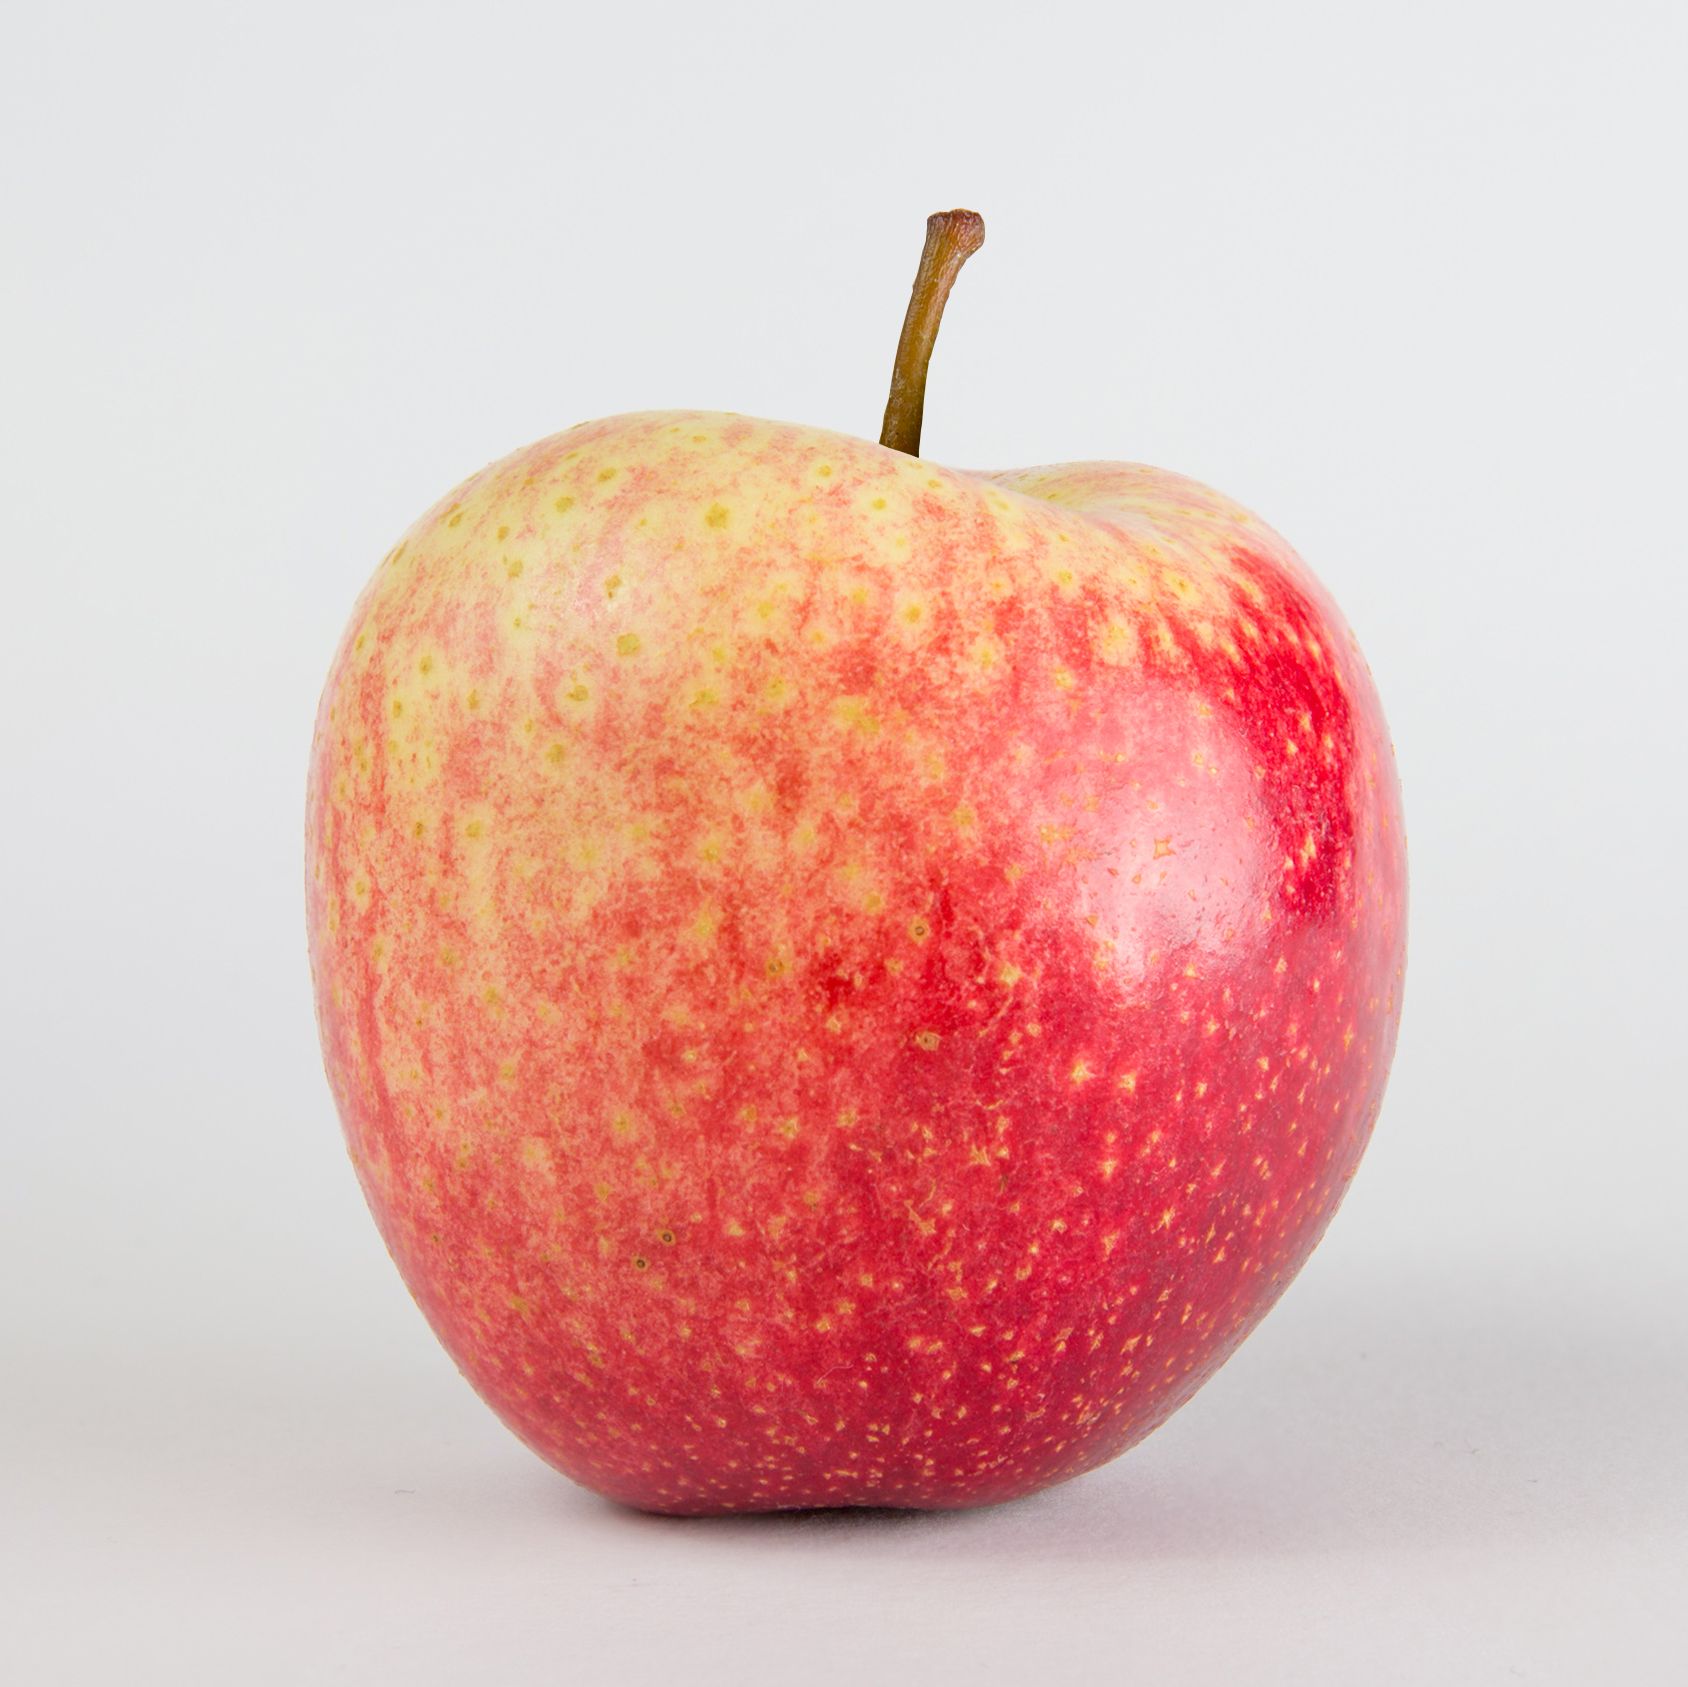 PurpleWhite , an exciting bi-coloured apple with a richly aromatic flavour